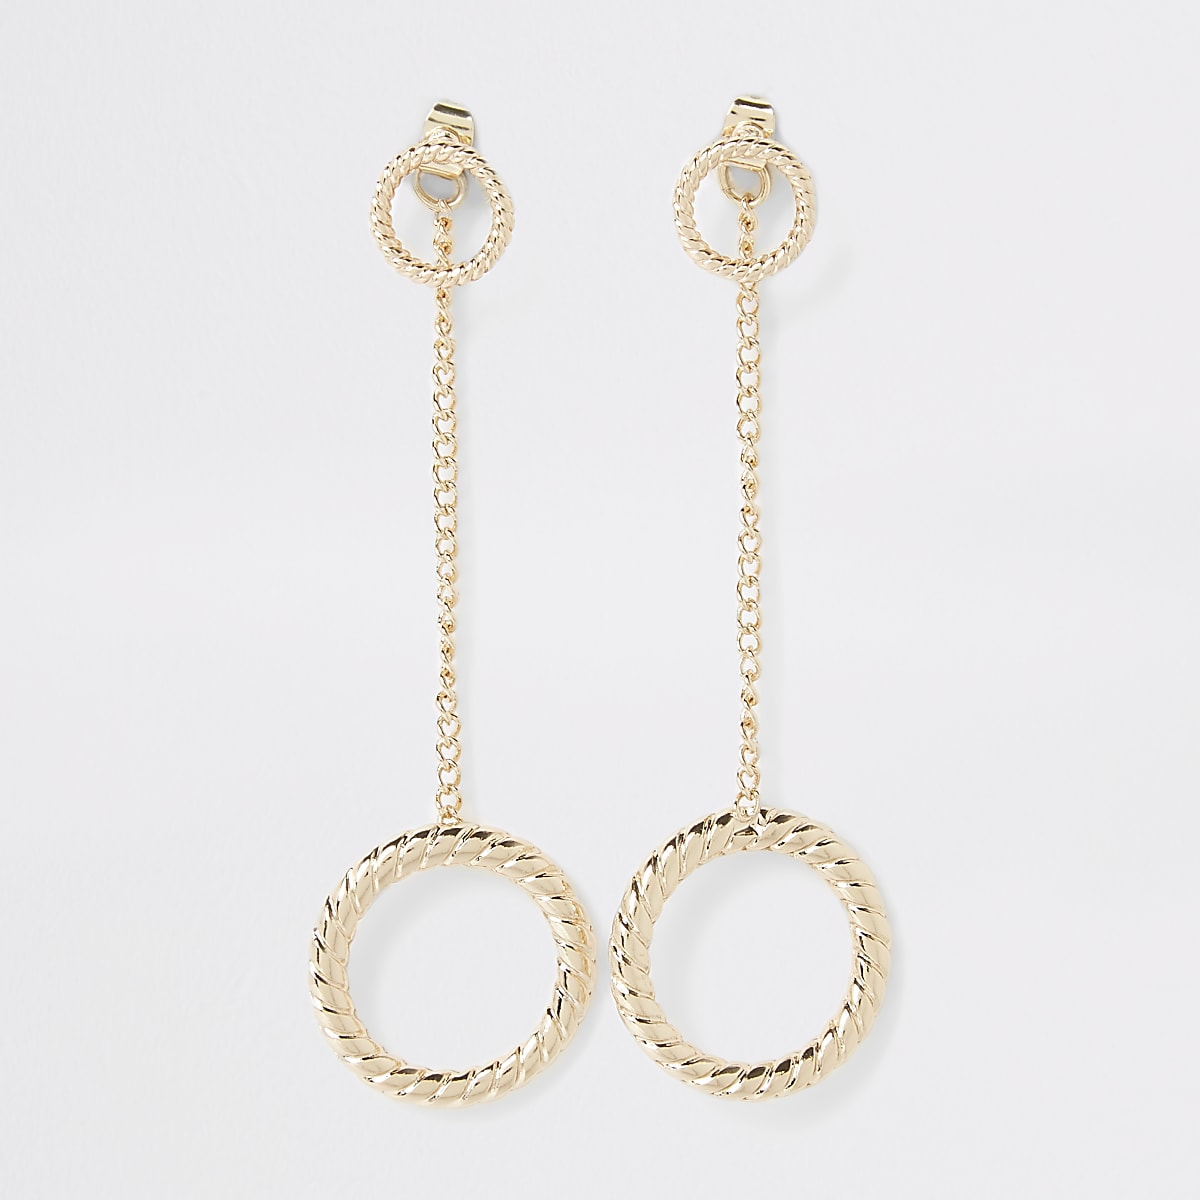 Gold color twist front and back earrings